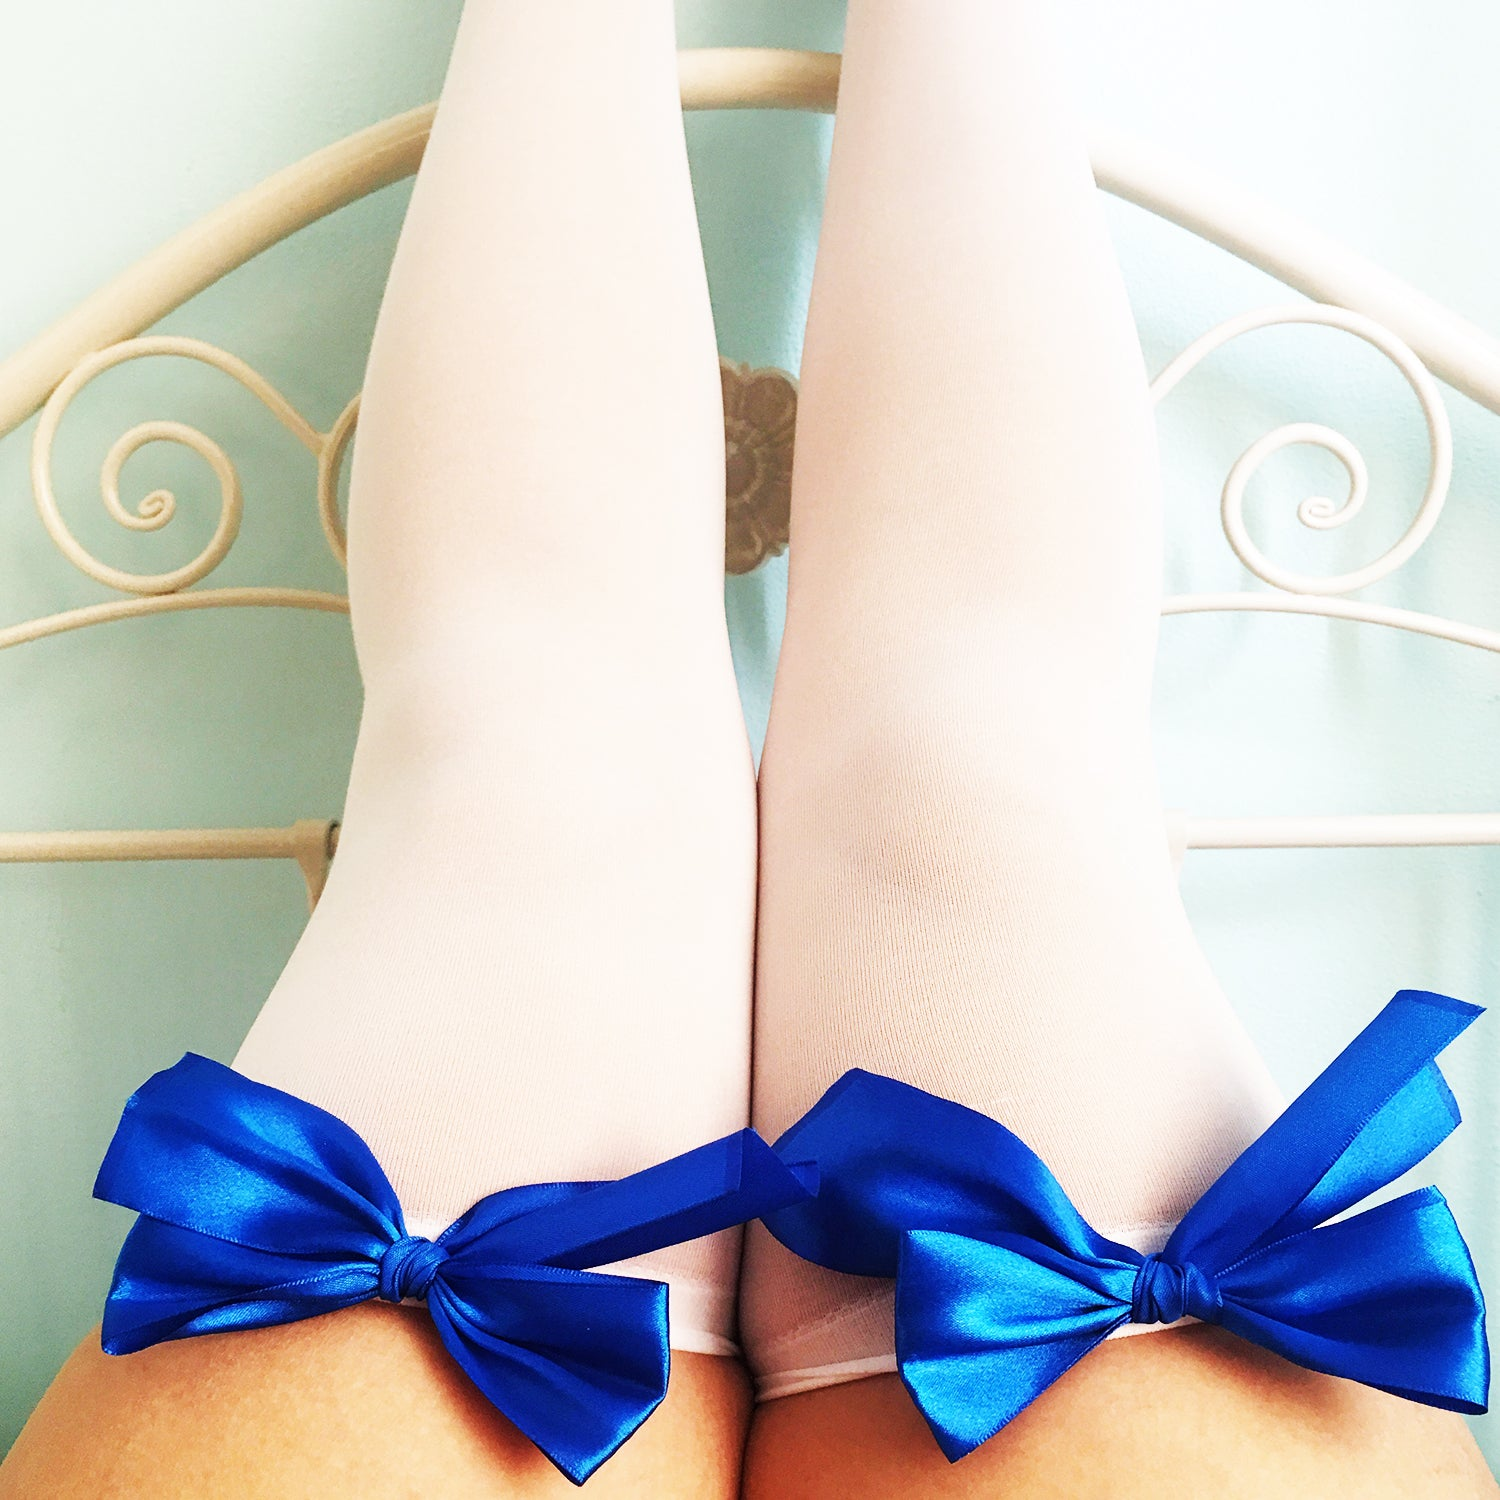 SALE Ava Pin-Up White With Royal Blue Bows Thigh High Stockings - Plus Size Available - Cherrylingerie